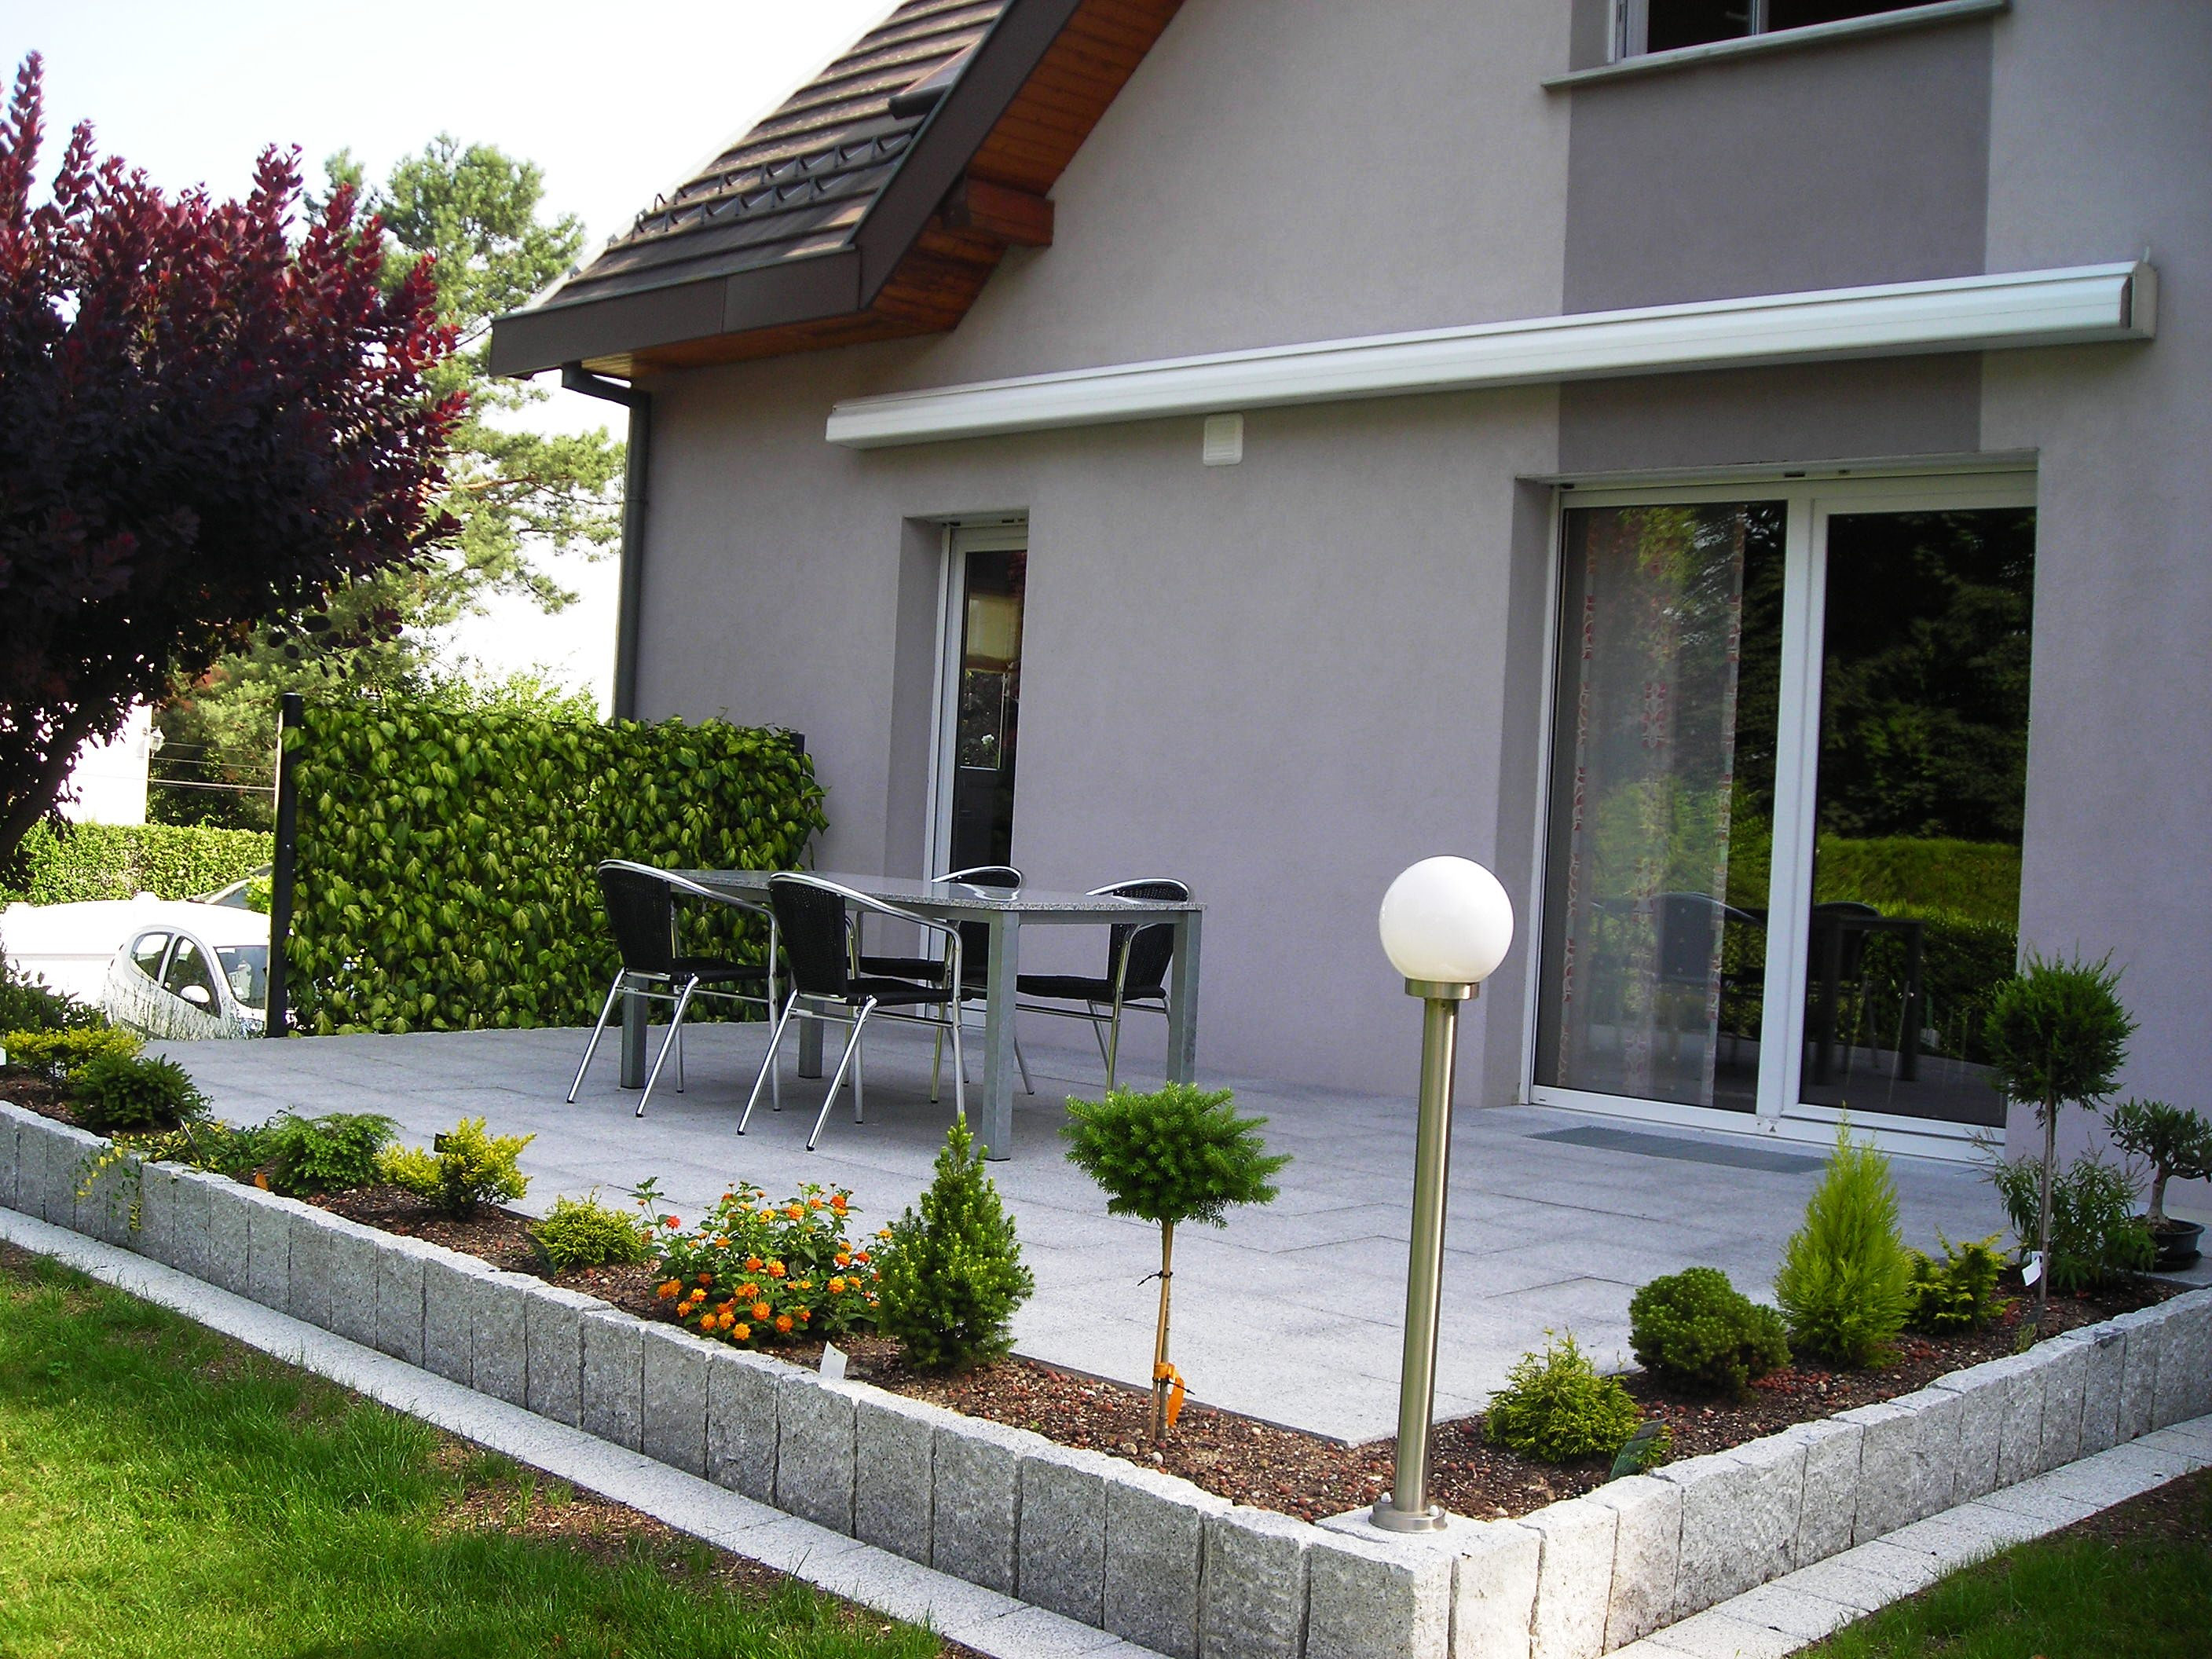 Europavage am nagement ext rieur paysagiste terrasse dalla escalier terrasse dallage granit - Faire ses bordures de jardin ...